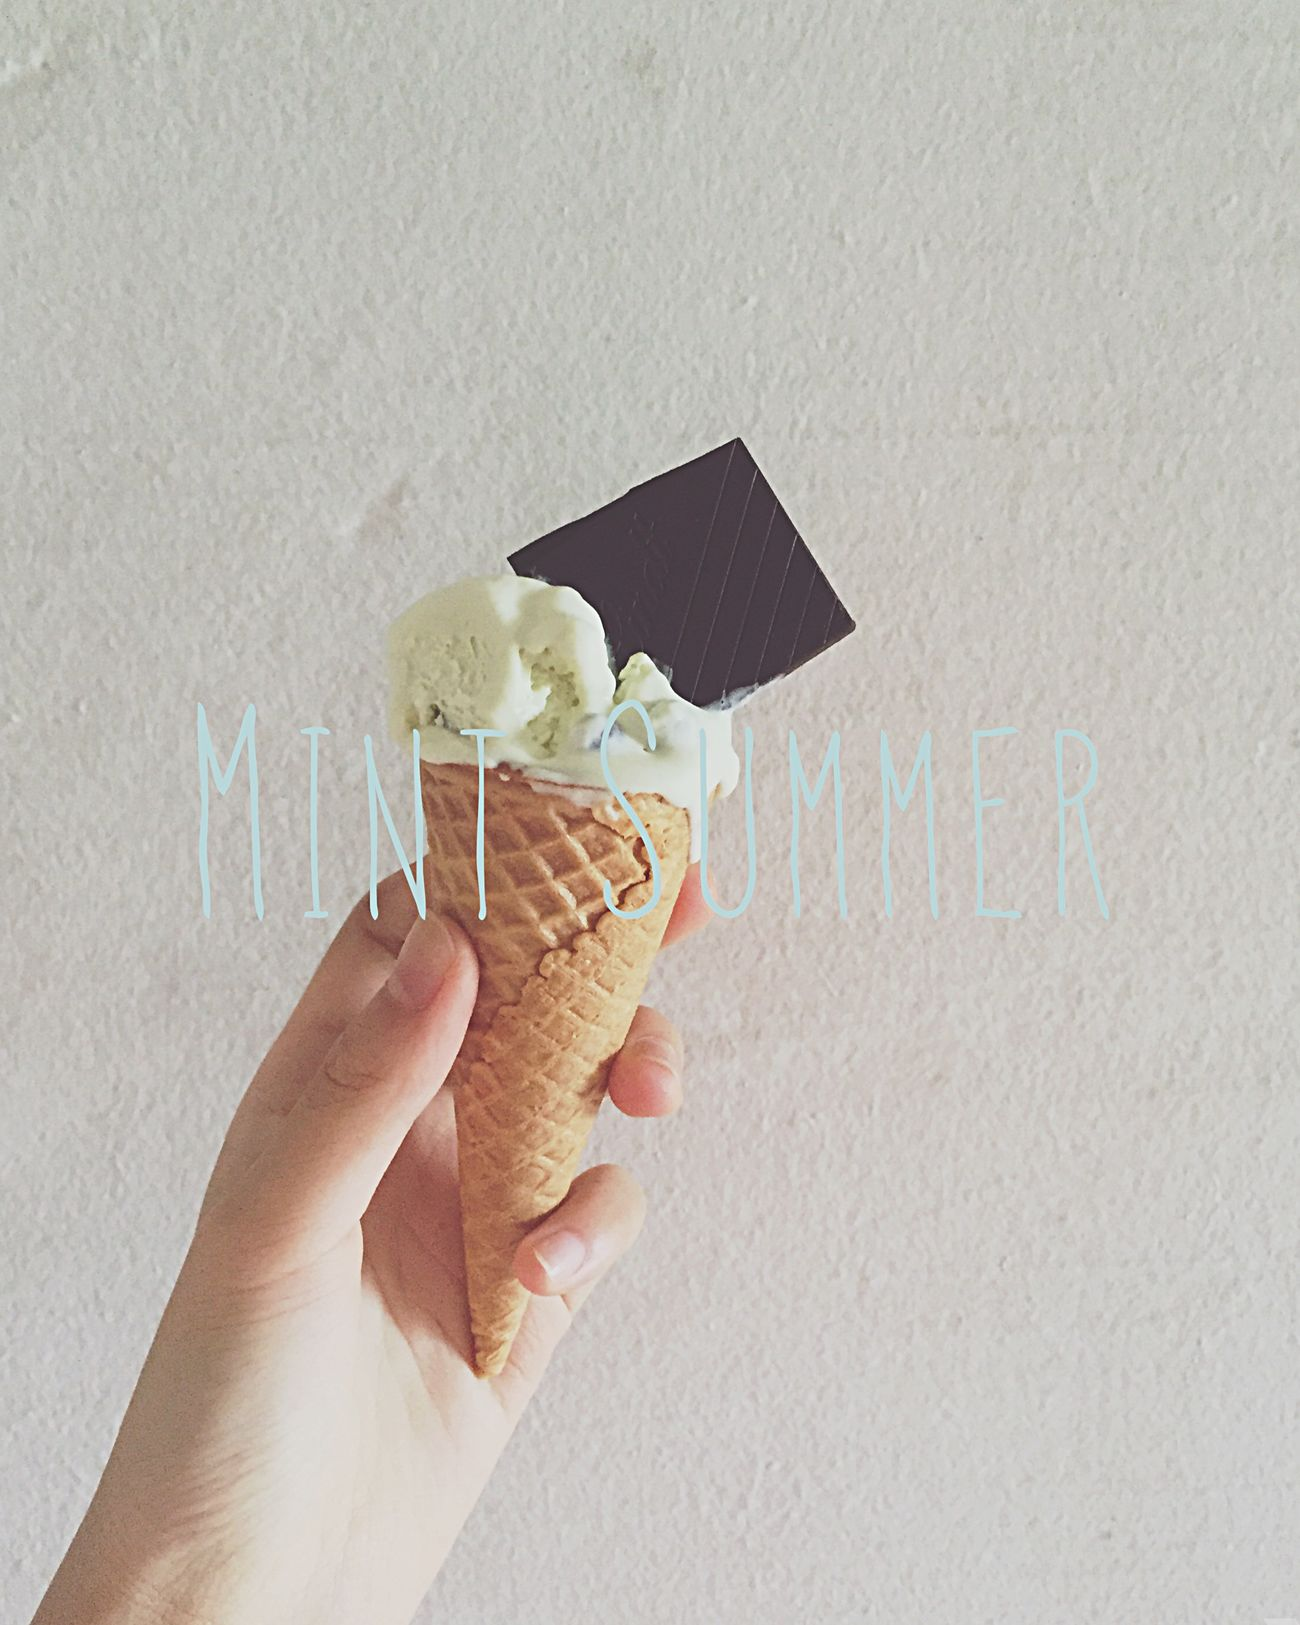 Mintpepper choco ice cream Taking Photos Handmadewithlove Time For Dessert! Relaxing